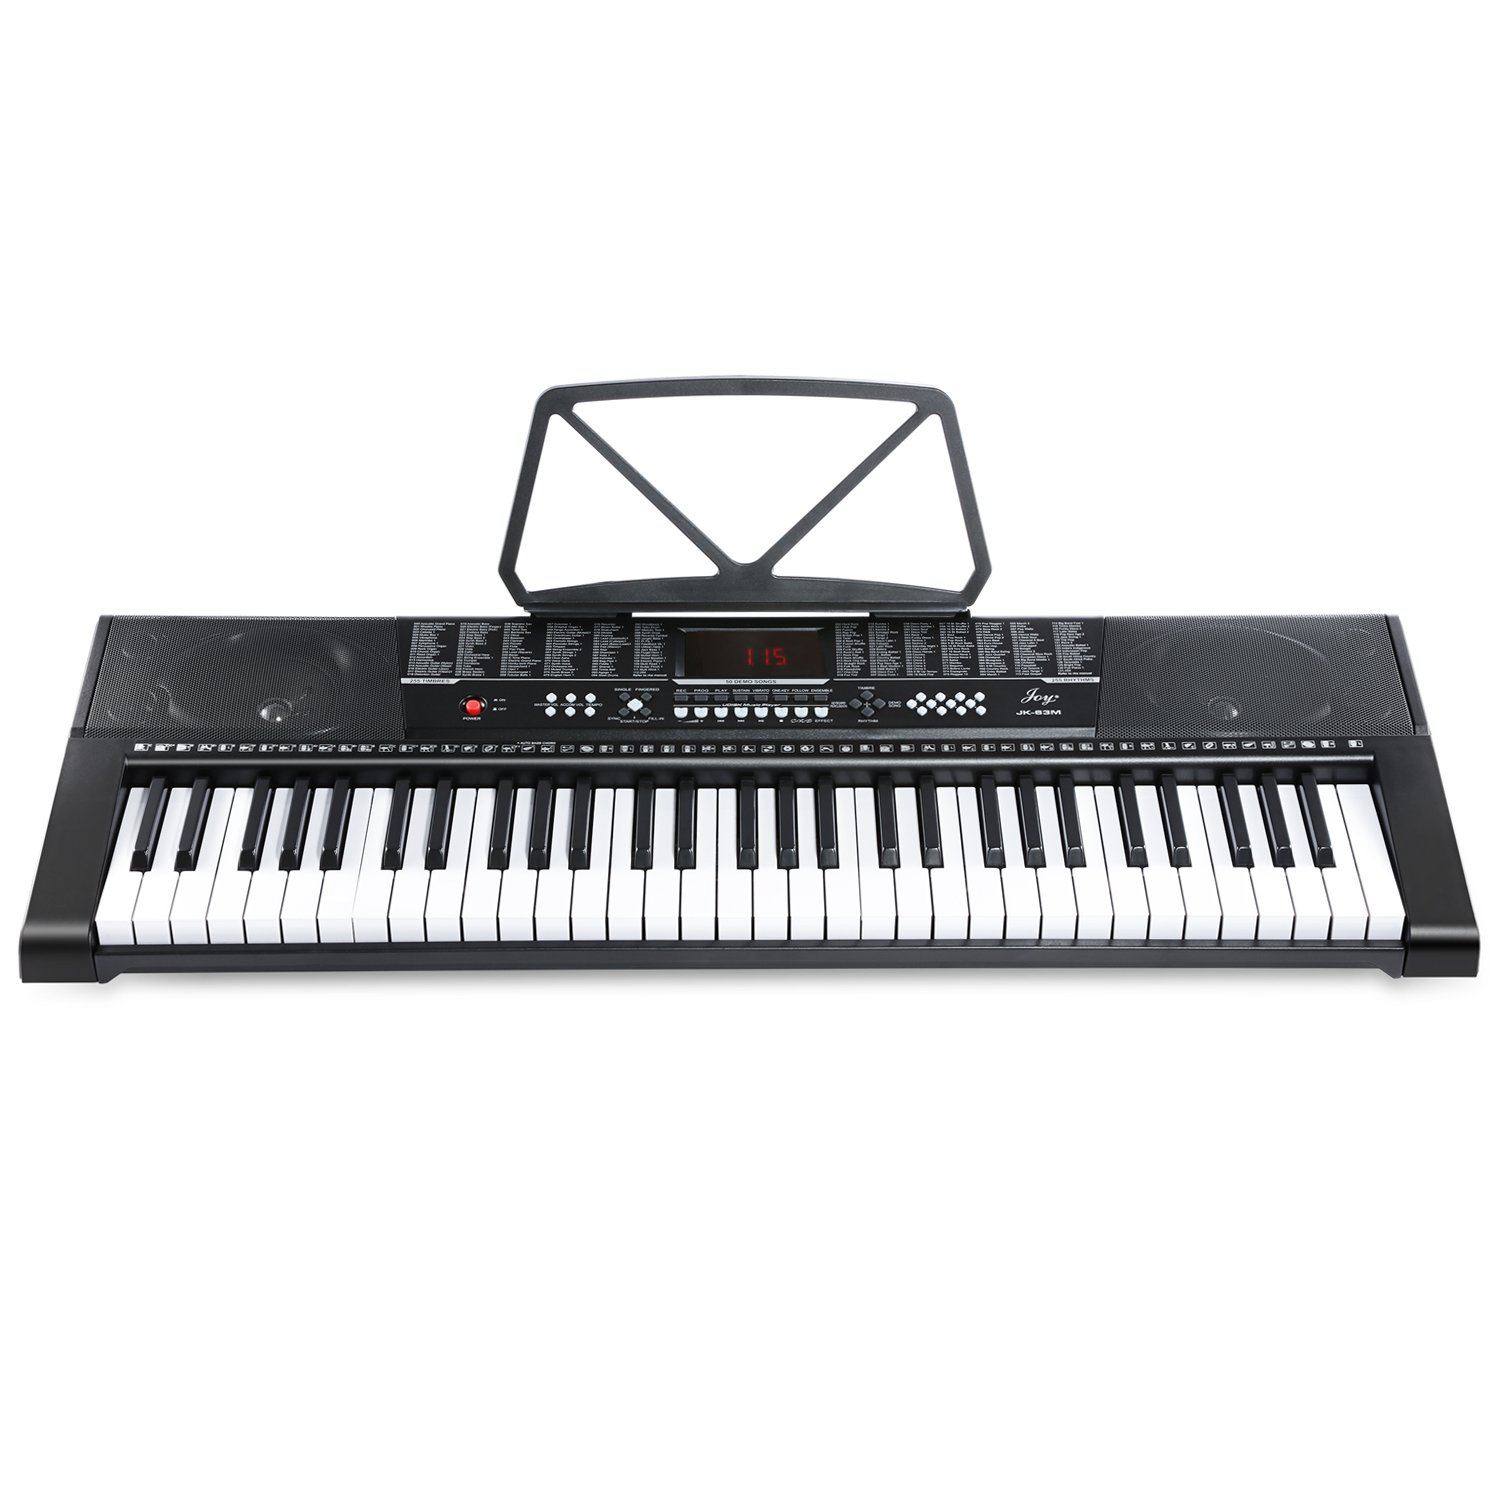 Joy JK-63M-KIT With USB 61-Key Keyboard Set Including Headphone, Stand, Stool and Power Supply CHINA JOY KEYBOARDS CO. LTD